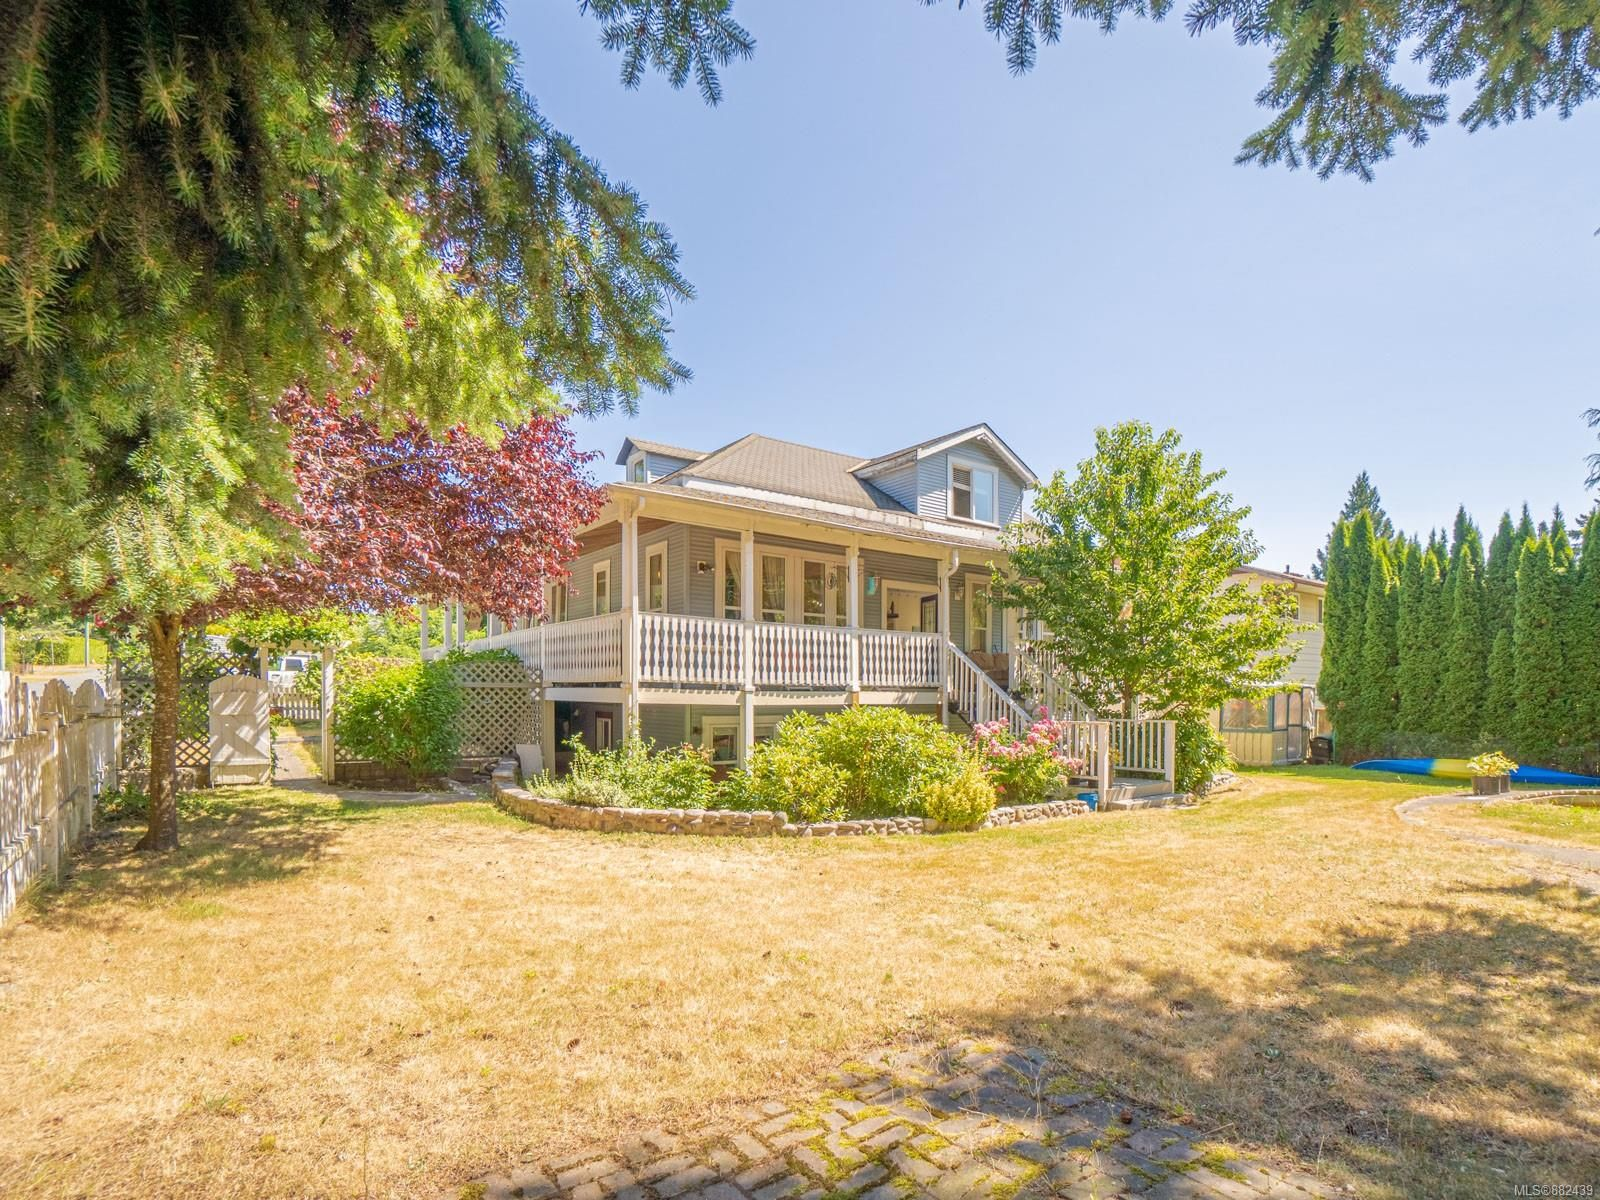 Main Photo: 2896 105th St in : Na Uplands House for sale (Nanaimo)  : MLS®# 882439